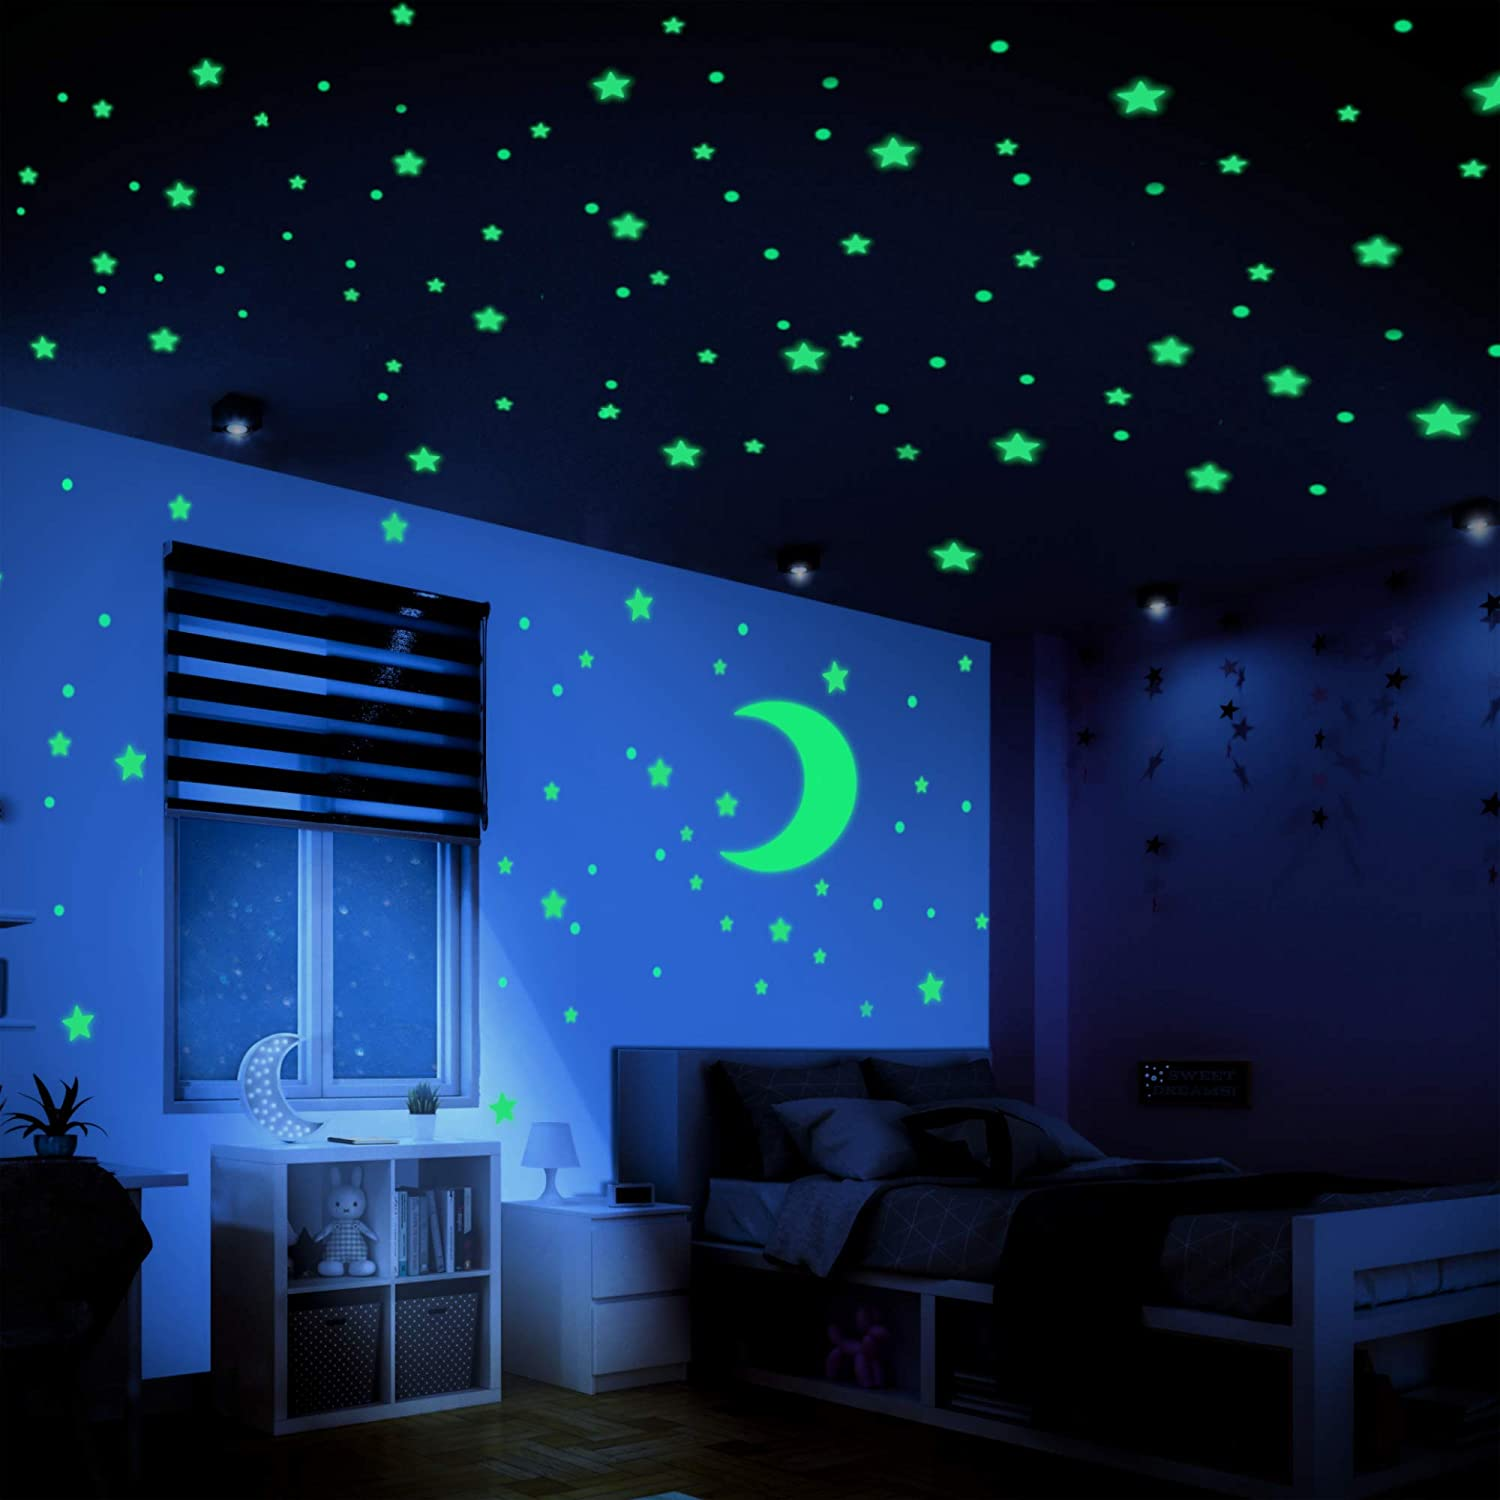 LUMOSX Glow in The Dark Stars for Ceiling Decor - 400 pcs Glow in The Dark Stickers of Ceiling Stars w/Bonus Moon Stickers and Dots Wall Decals, Star Ceiling for Kids Room Decor Kids Wall Decor